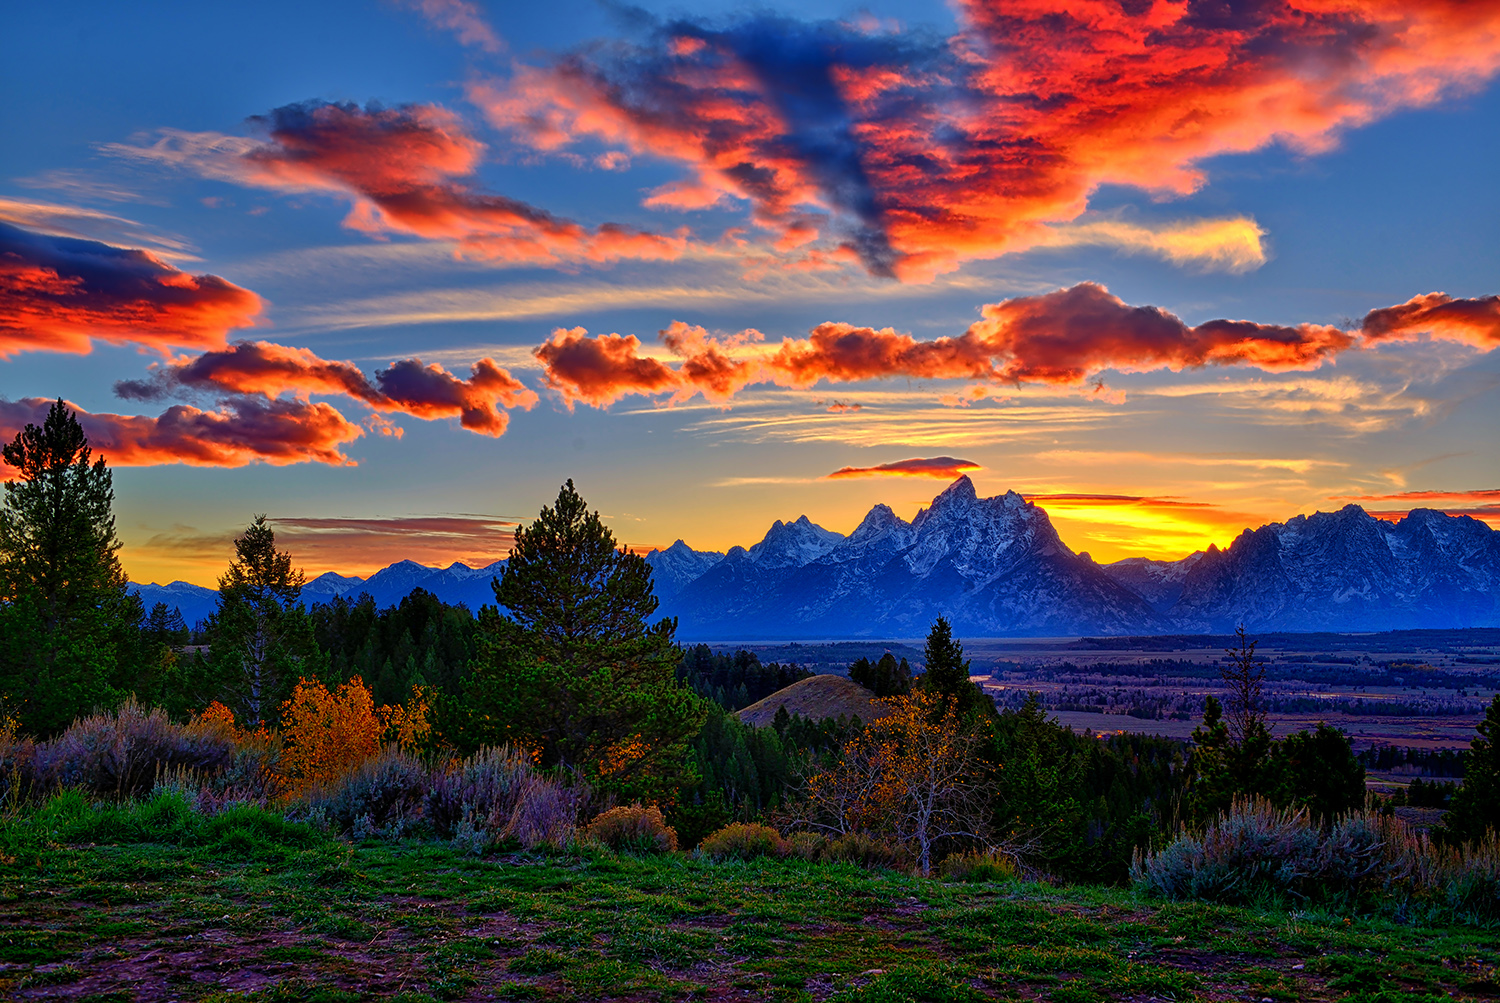 American Wallpaper Fall River Fine Art Nature Photography From Grand Teton National Park